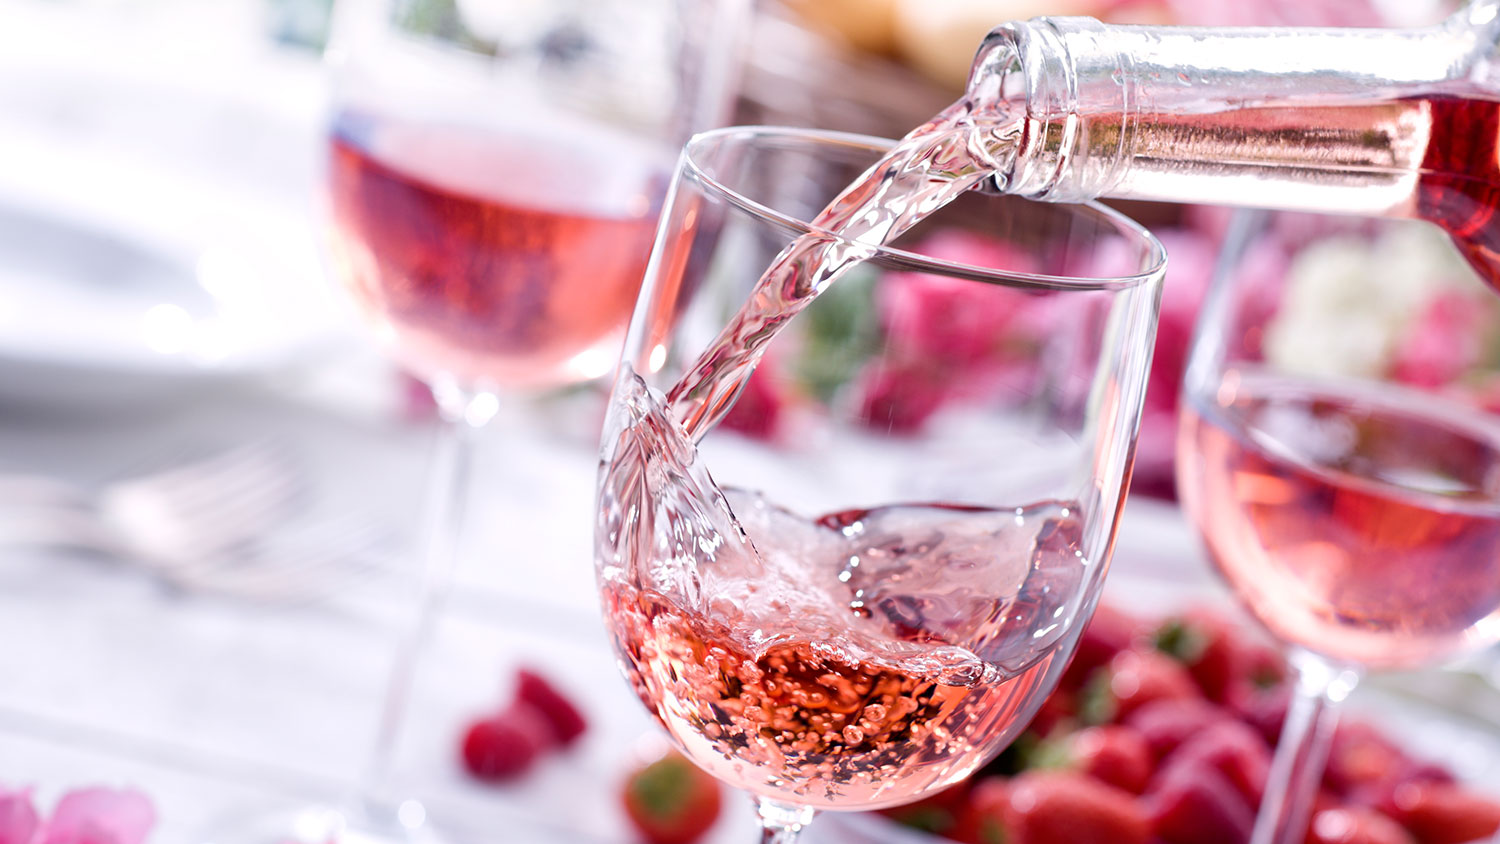 There's a Massive Wine Sale at Lidl, So Stock Up on Rosé While You Still Can